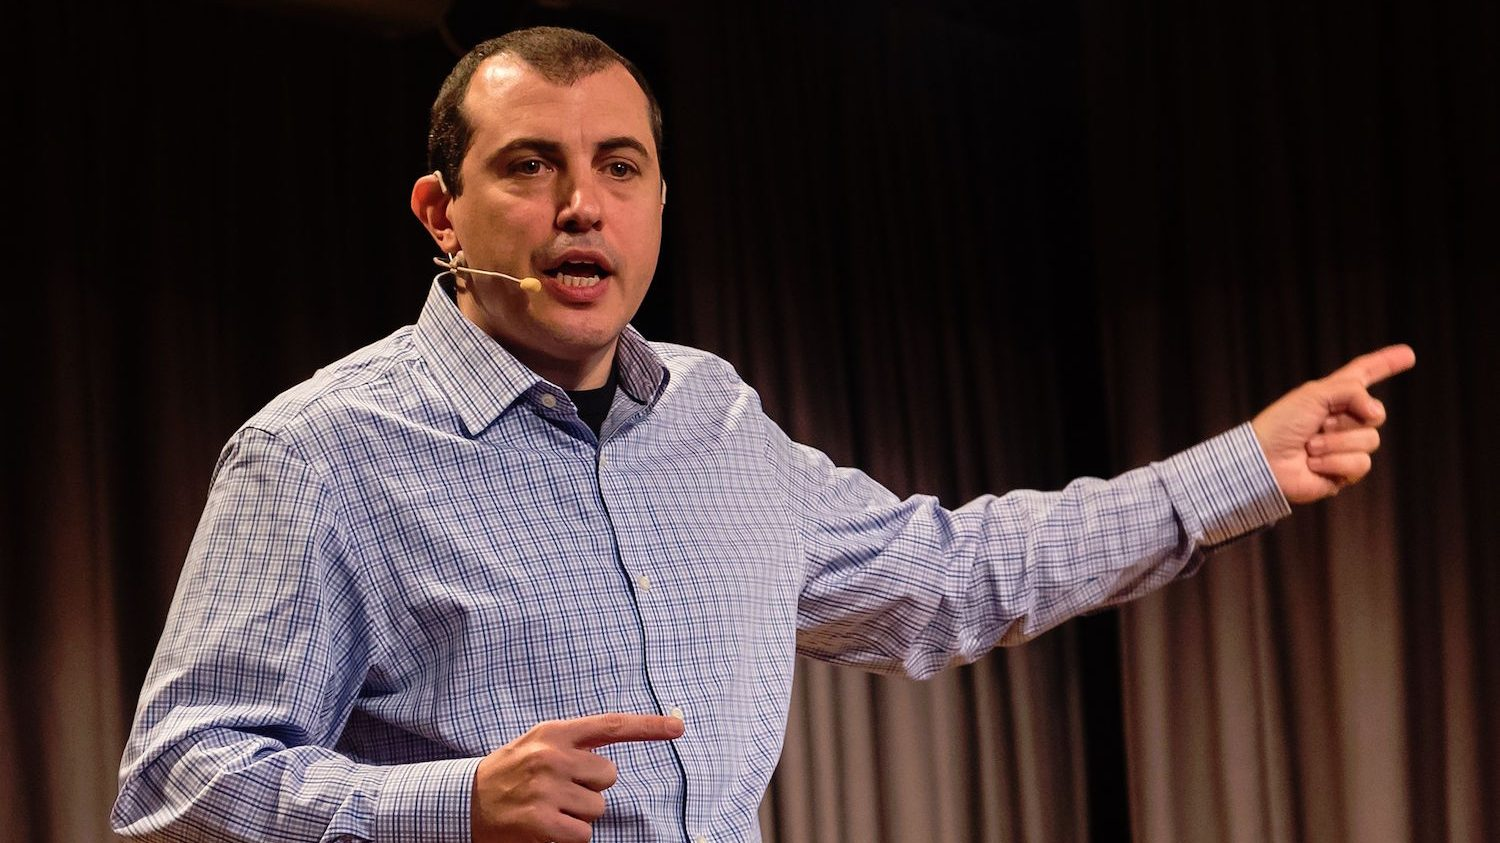 Andreas M. Antonopoulos speaking in Zurich in 2016